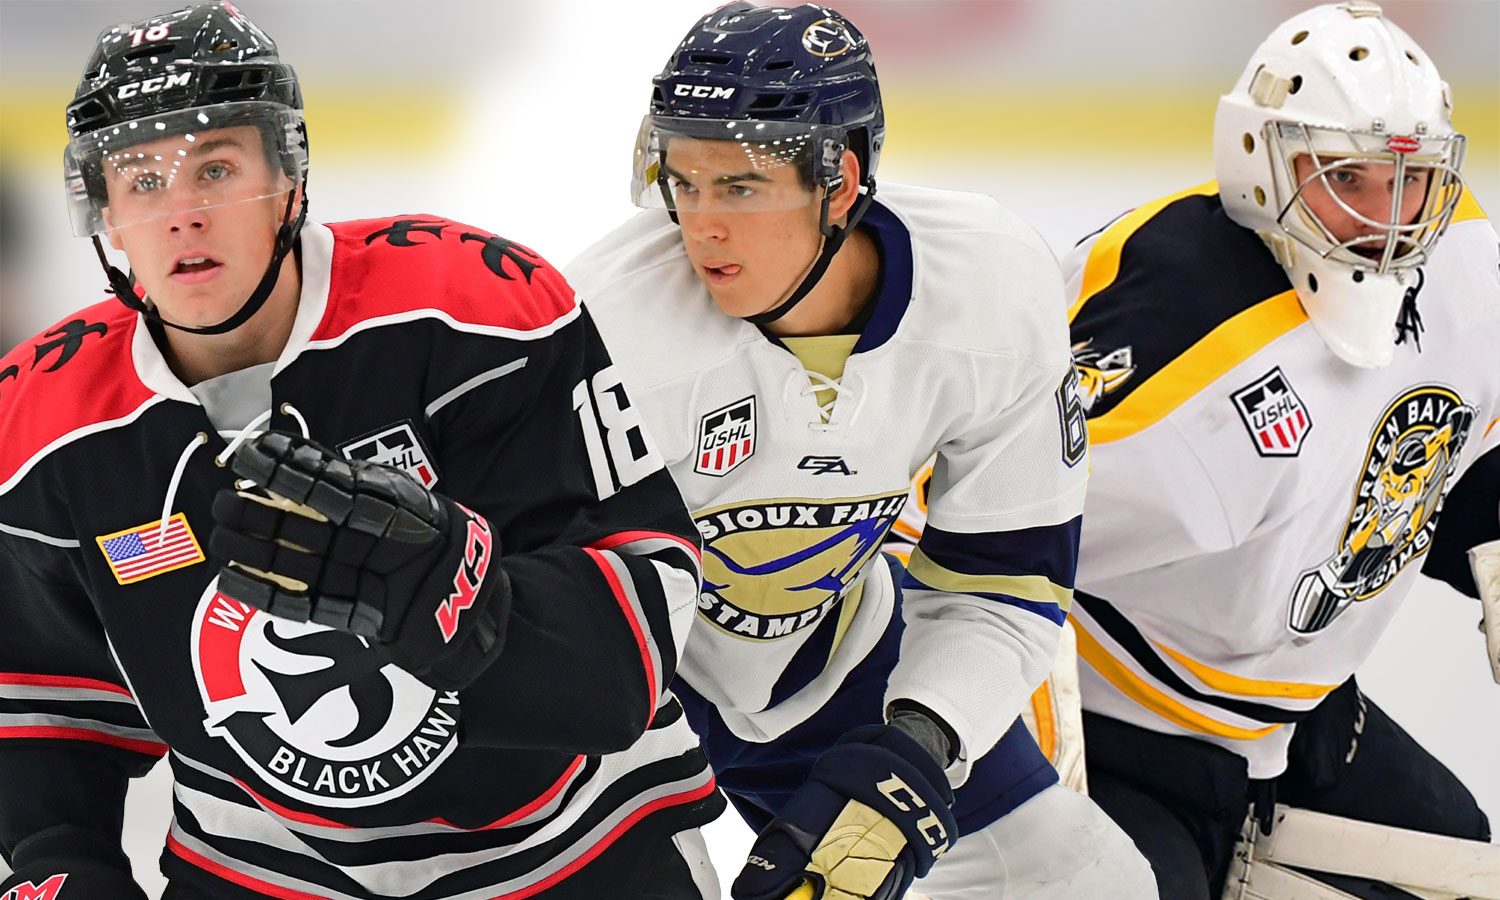 USHL: Players Of The Week - Week 19, 2017-18